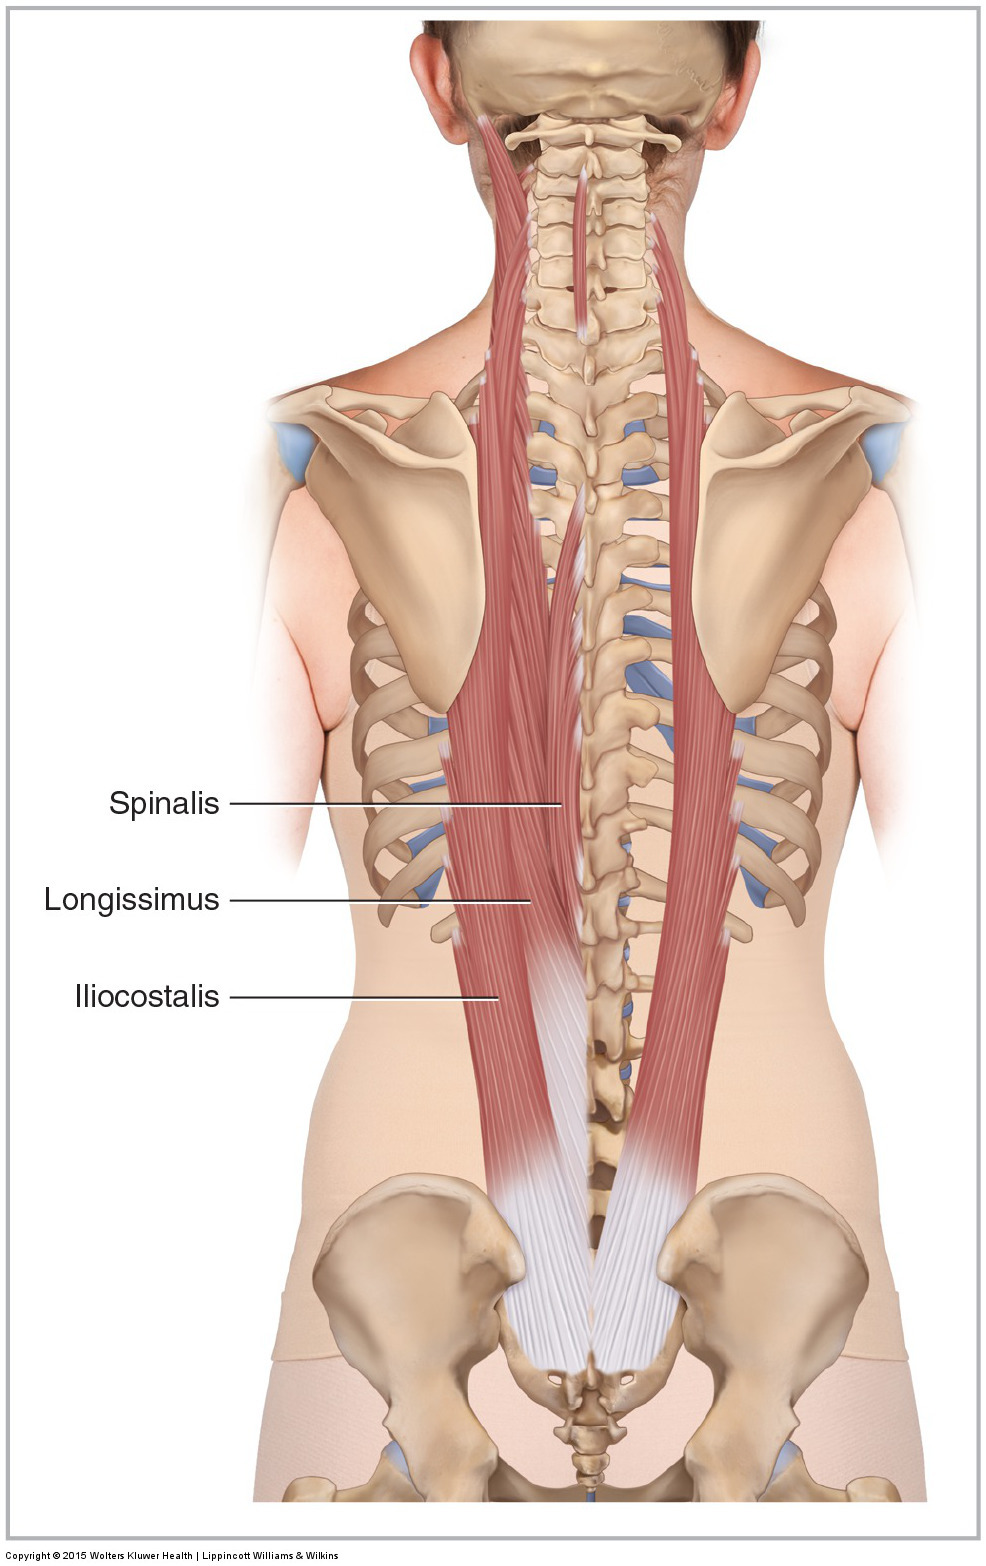 Name Of Lower Back Muscles : lower, muscles, Muscles, Lumbar, Spine, Trunk